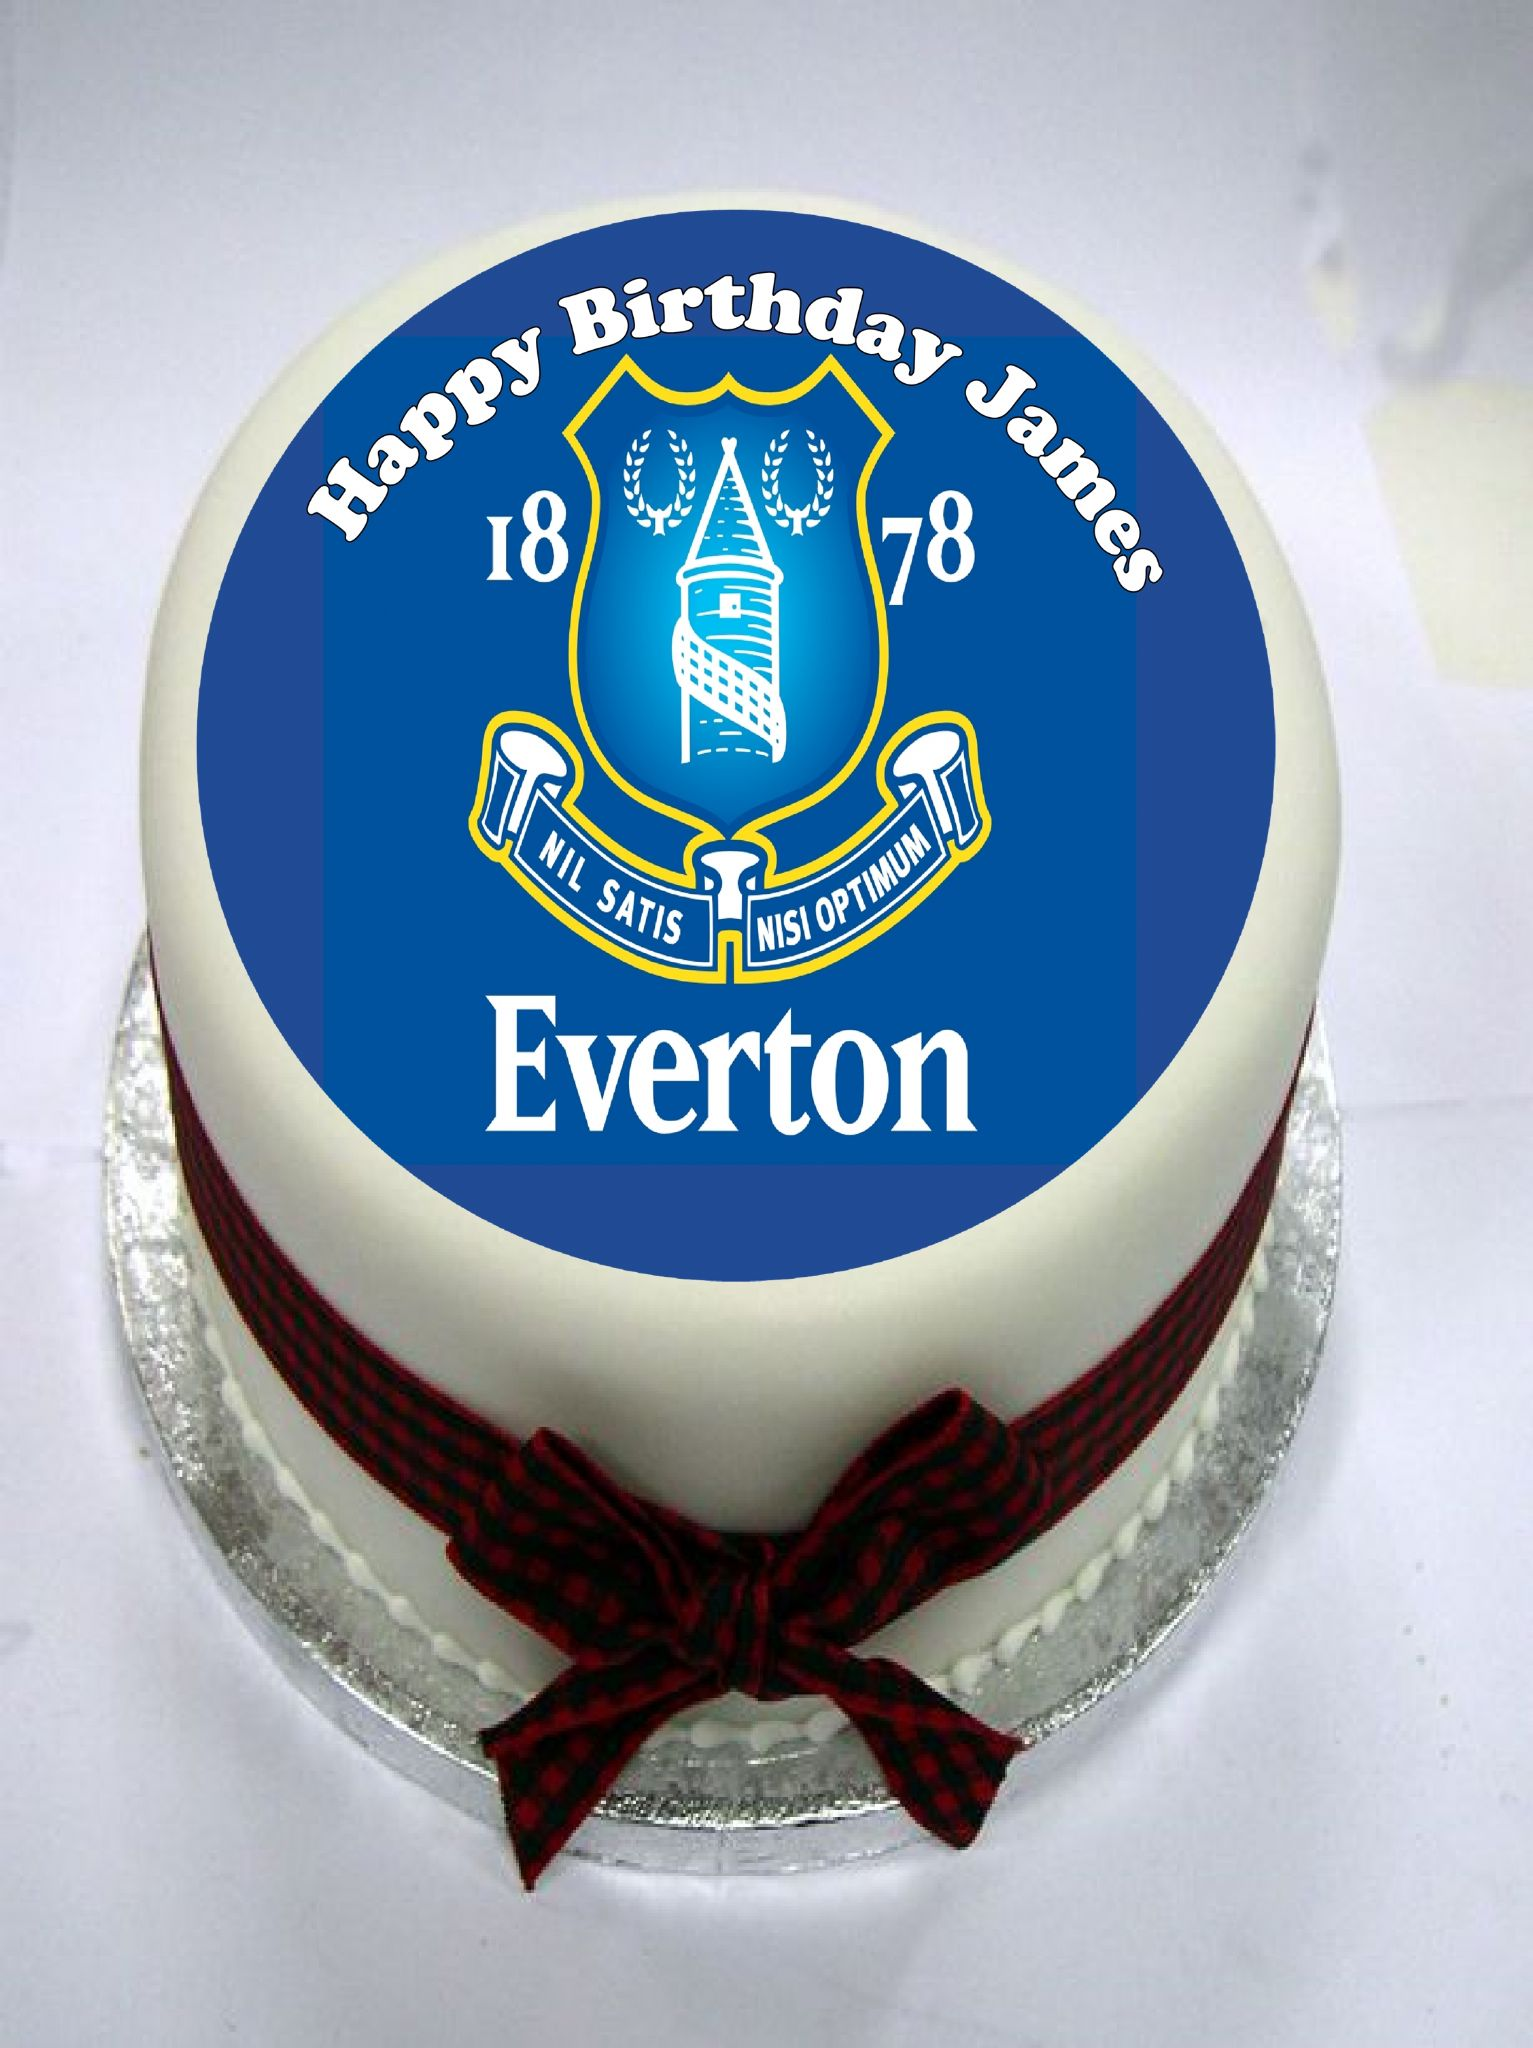 Everton Edible Cake Topper Style Chocolate Fudge Kit Incl Icing 3174 P